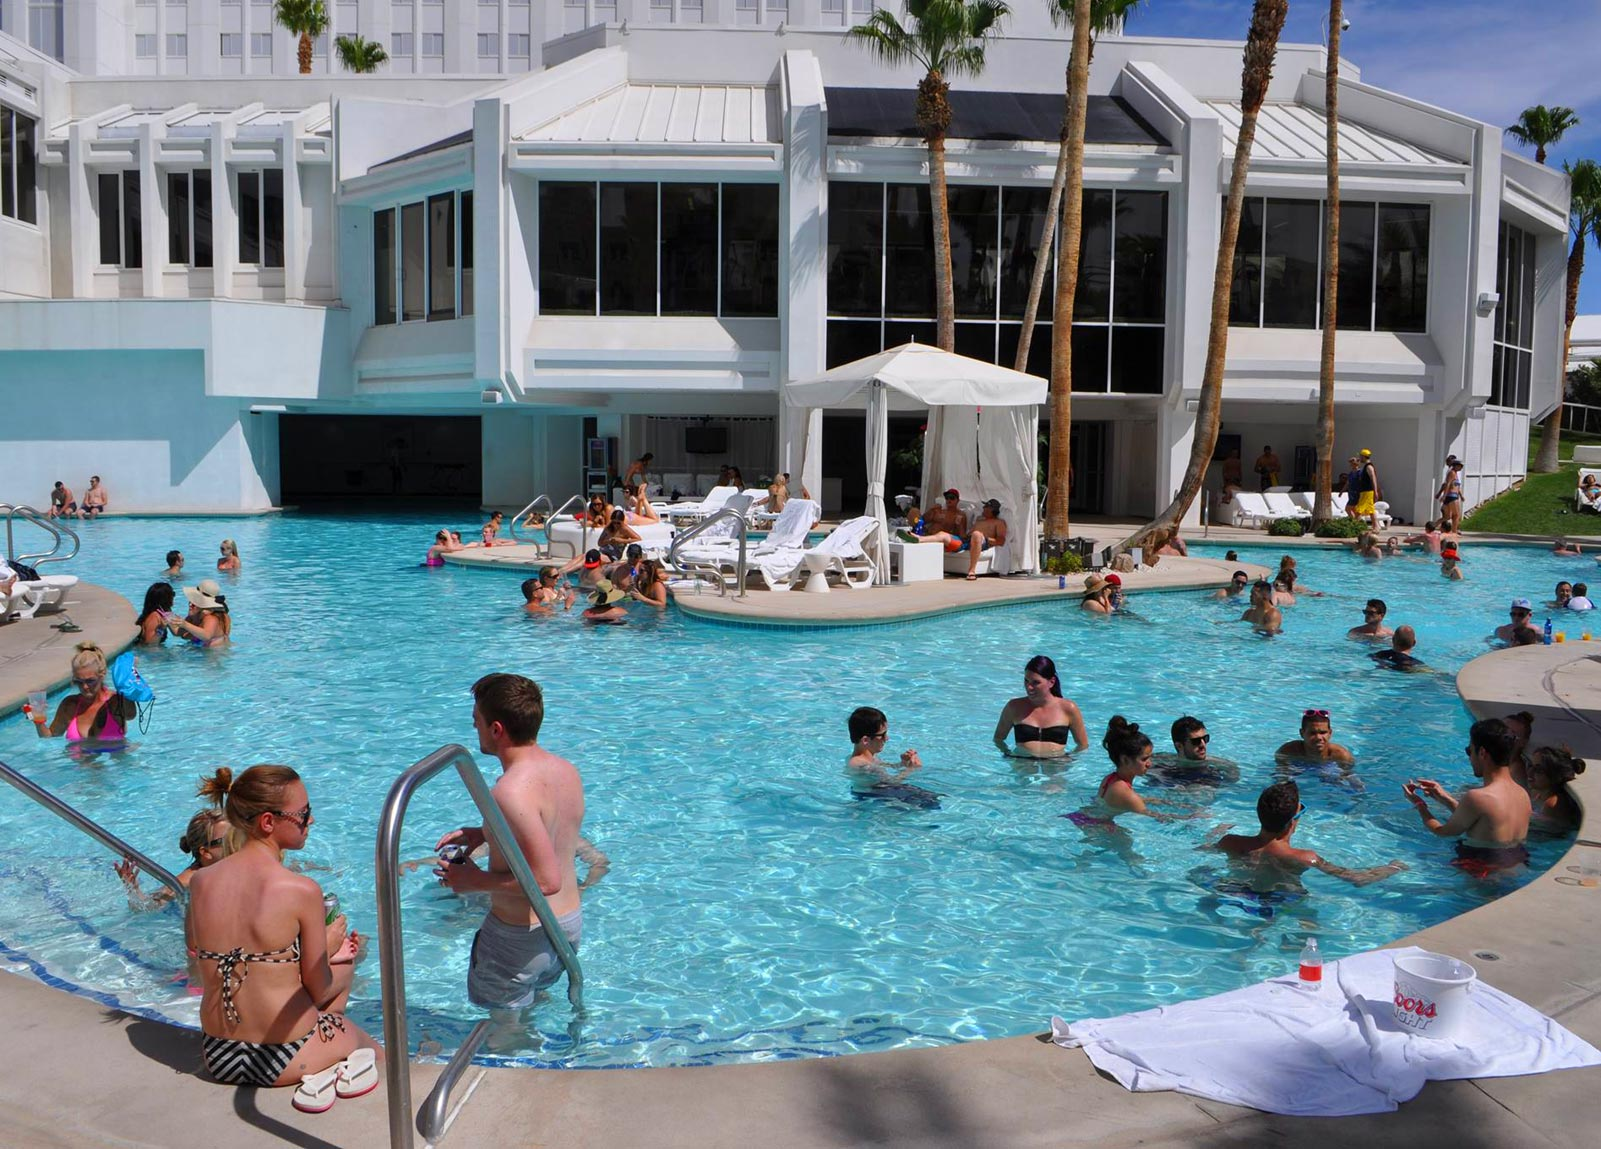 Tropicana Las Vegas Pool